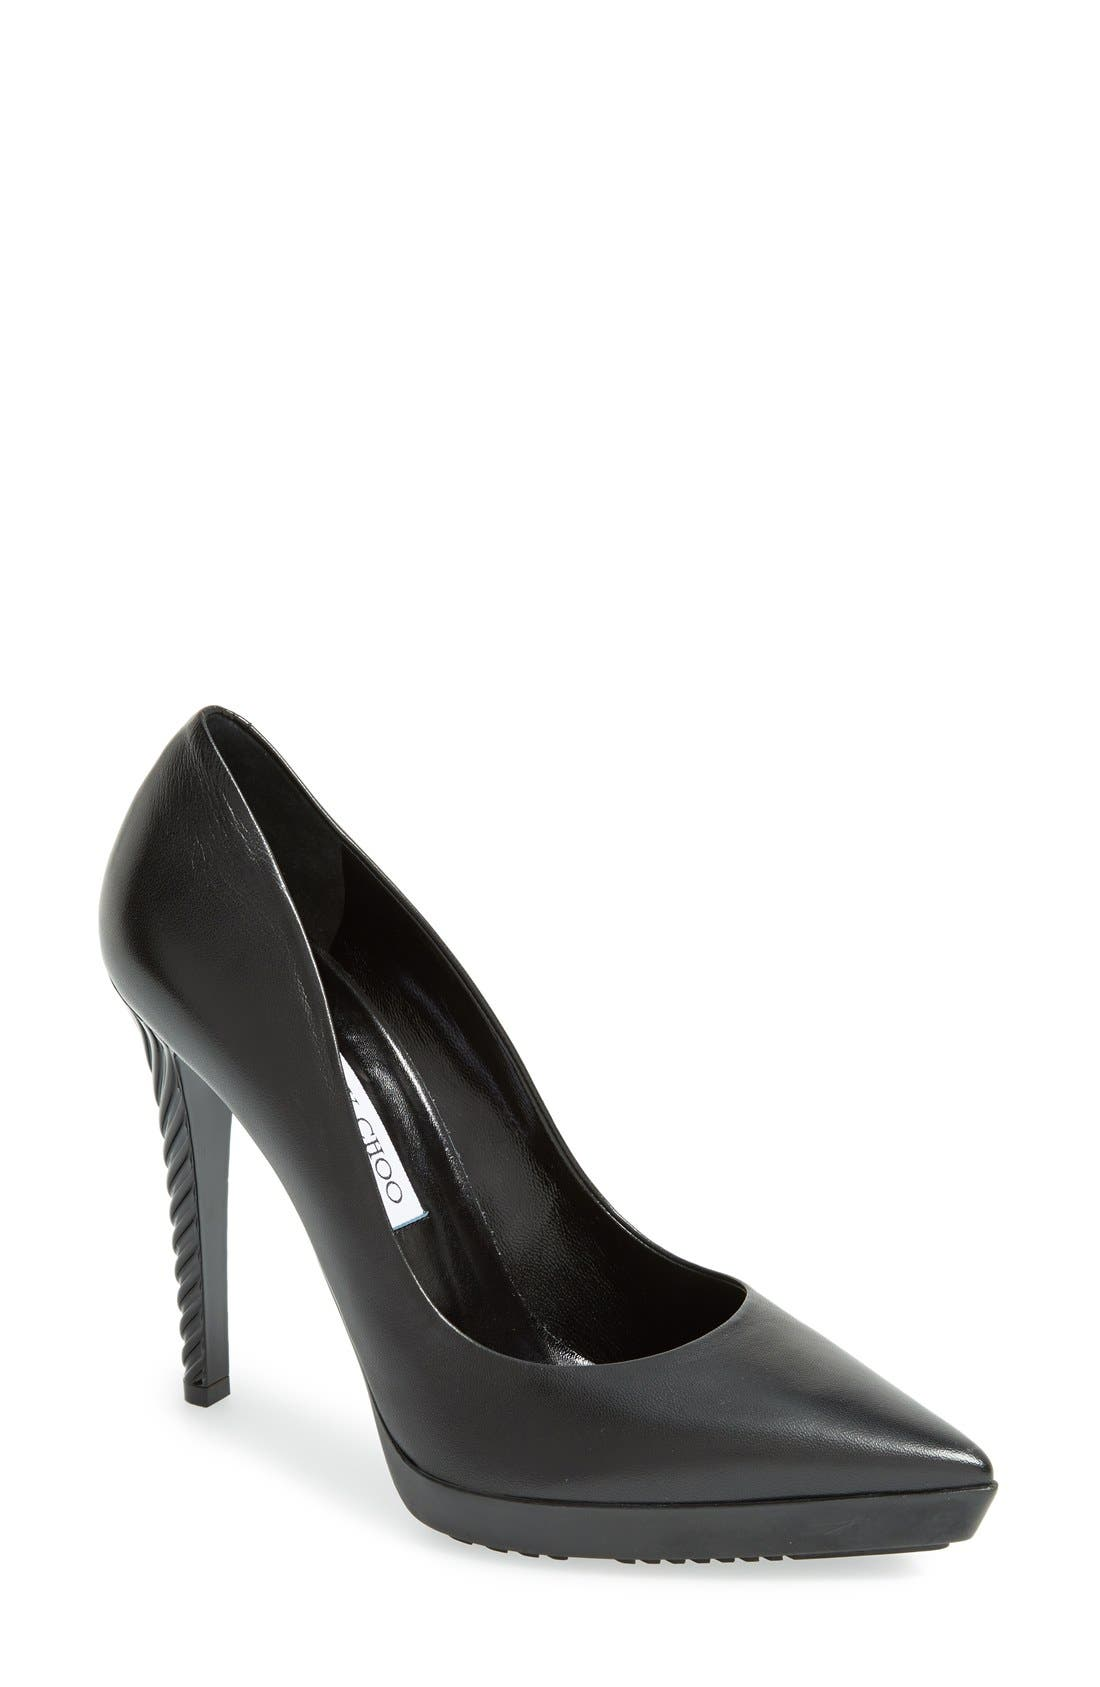 Main Image - Jimmy Choo 'Tisri' Pointy Toe Platform Pump (Women)